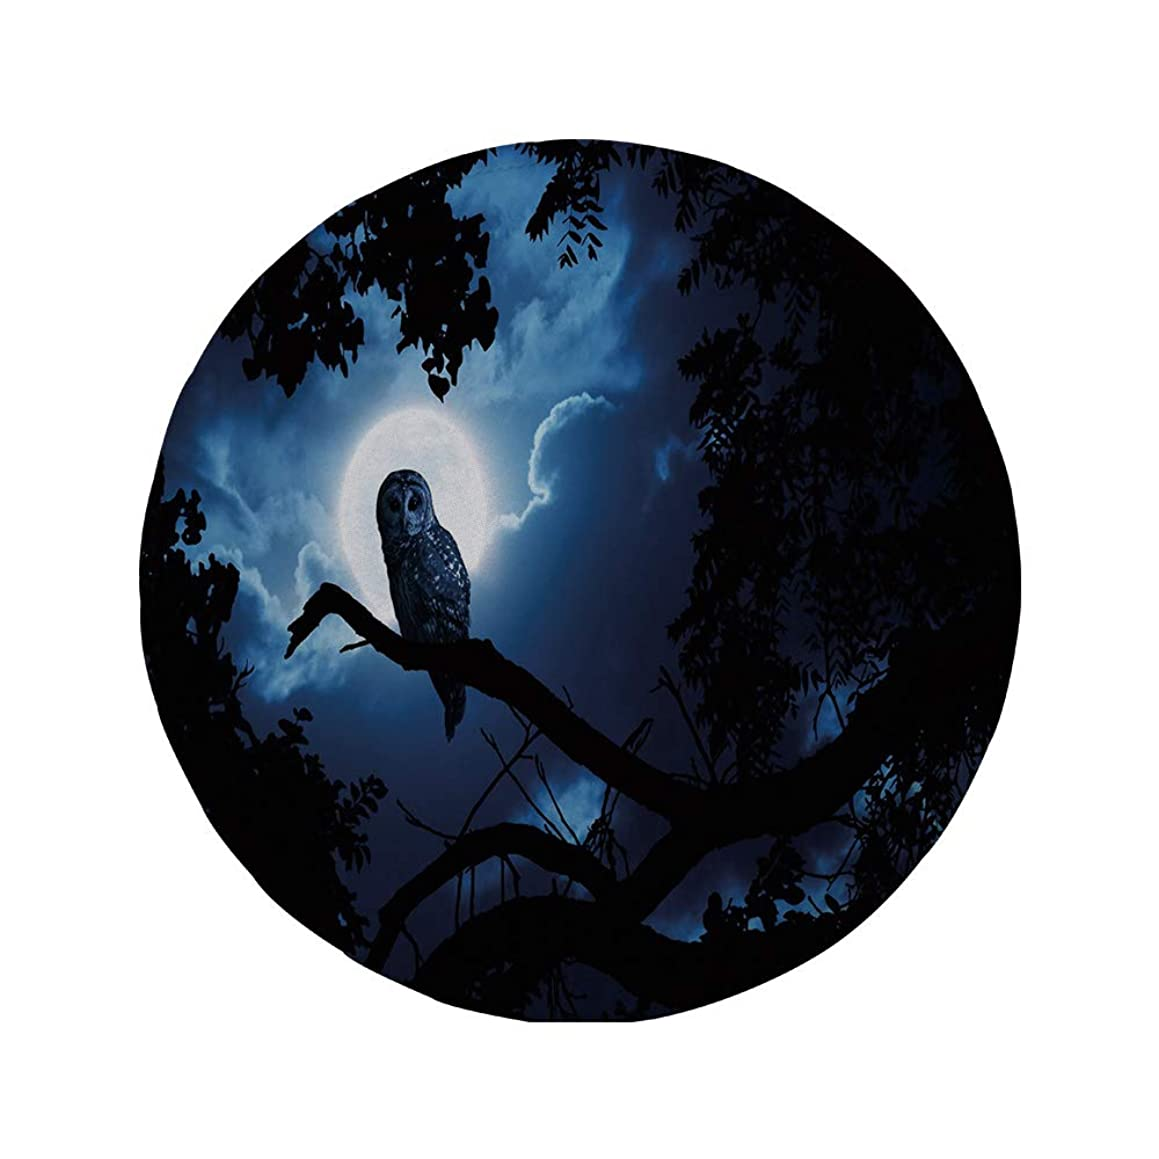 Non-Slip Rubber Round Mouse Pad,Night,Quiet Night in The Woods Full Moon Tall Trees and Owl on Branch Tranquil Scene Decorative,Black Blue White,7.87